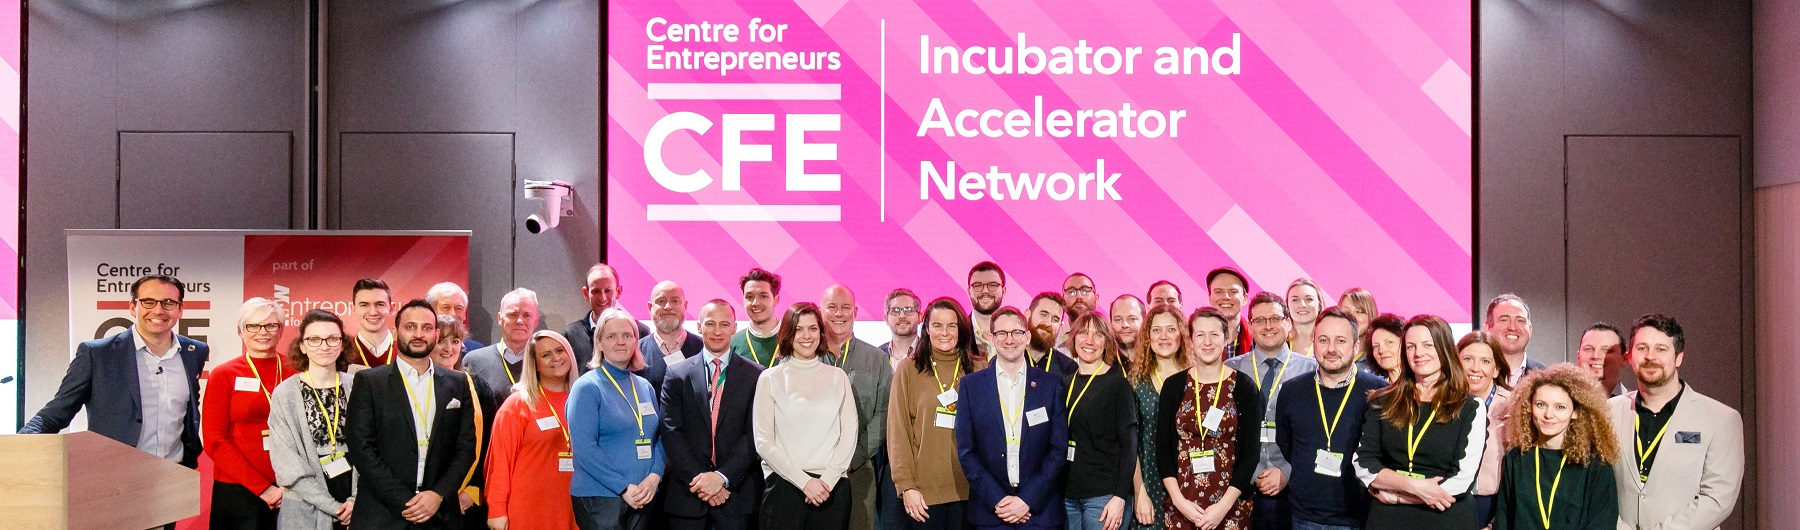 Incubator and Accelerator Network Annual Conference 2020